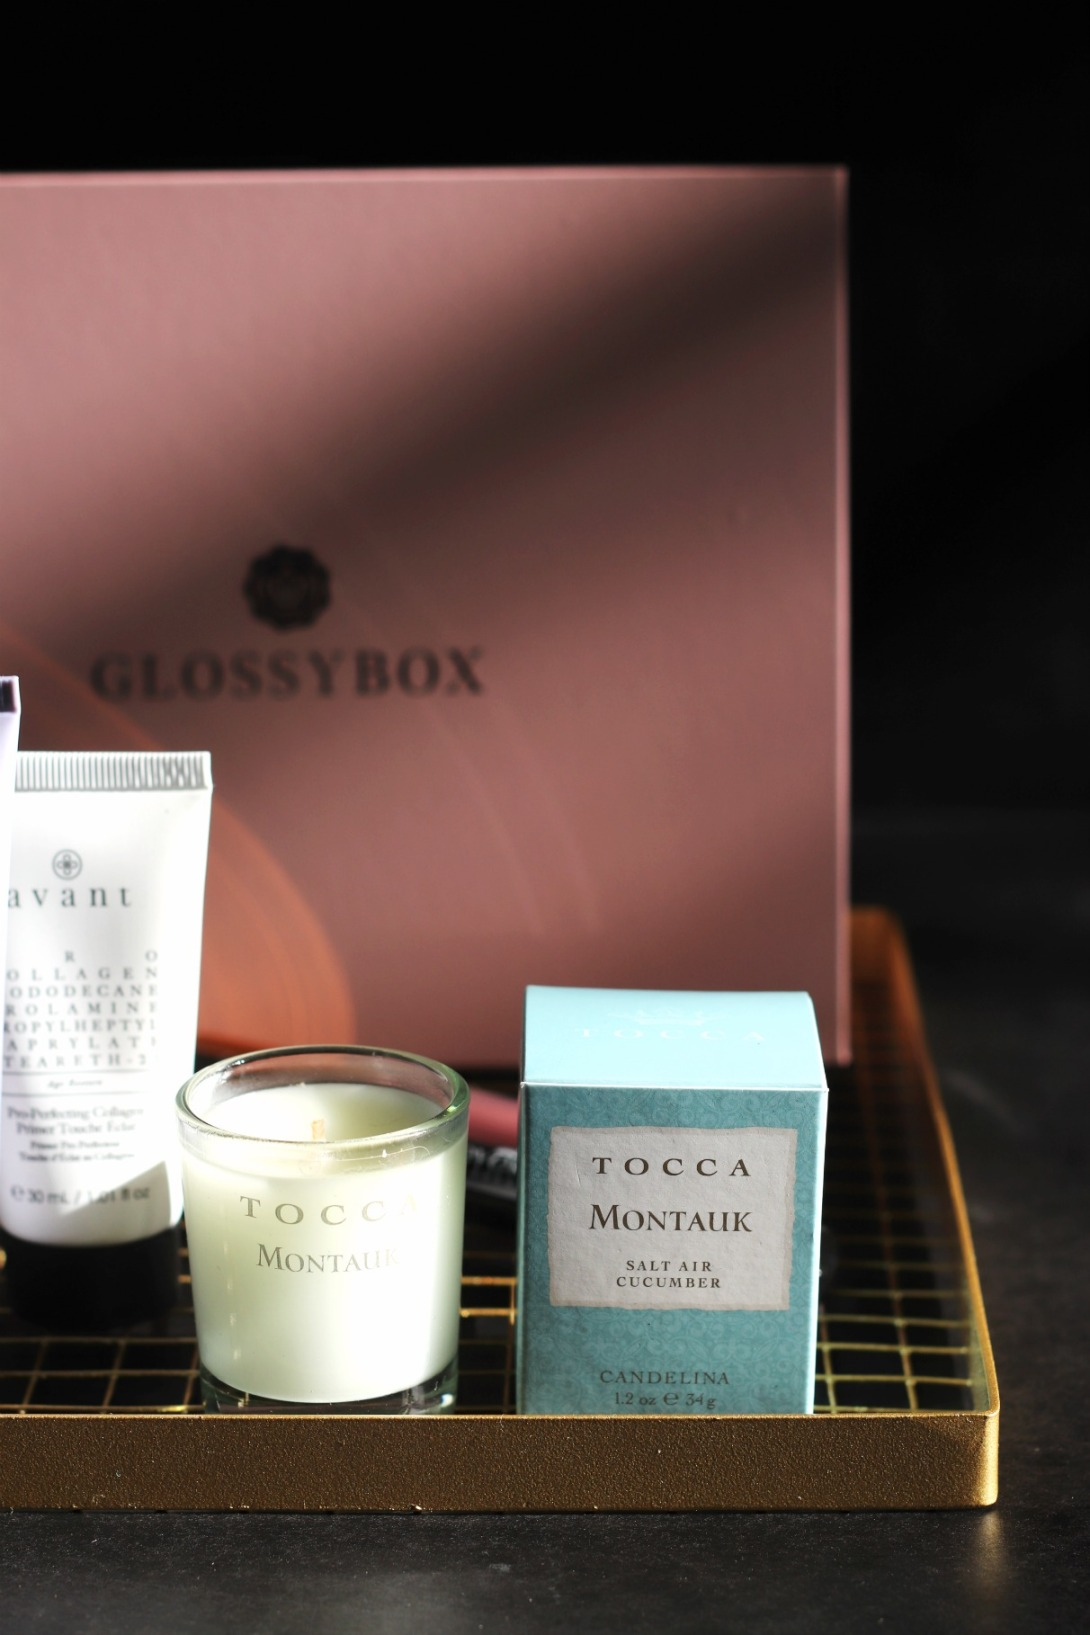 GLOSSYBOX Sept Tocca Montauk candle